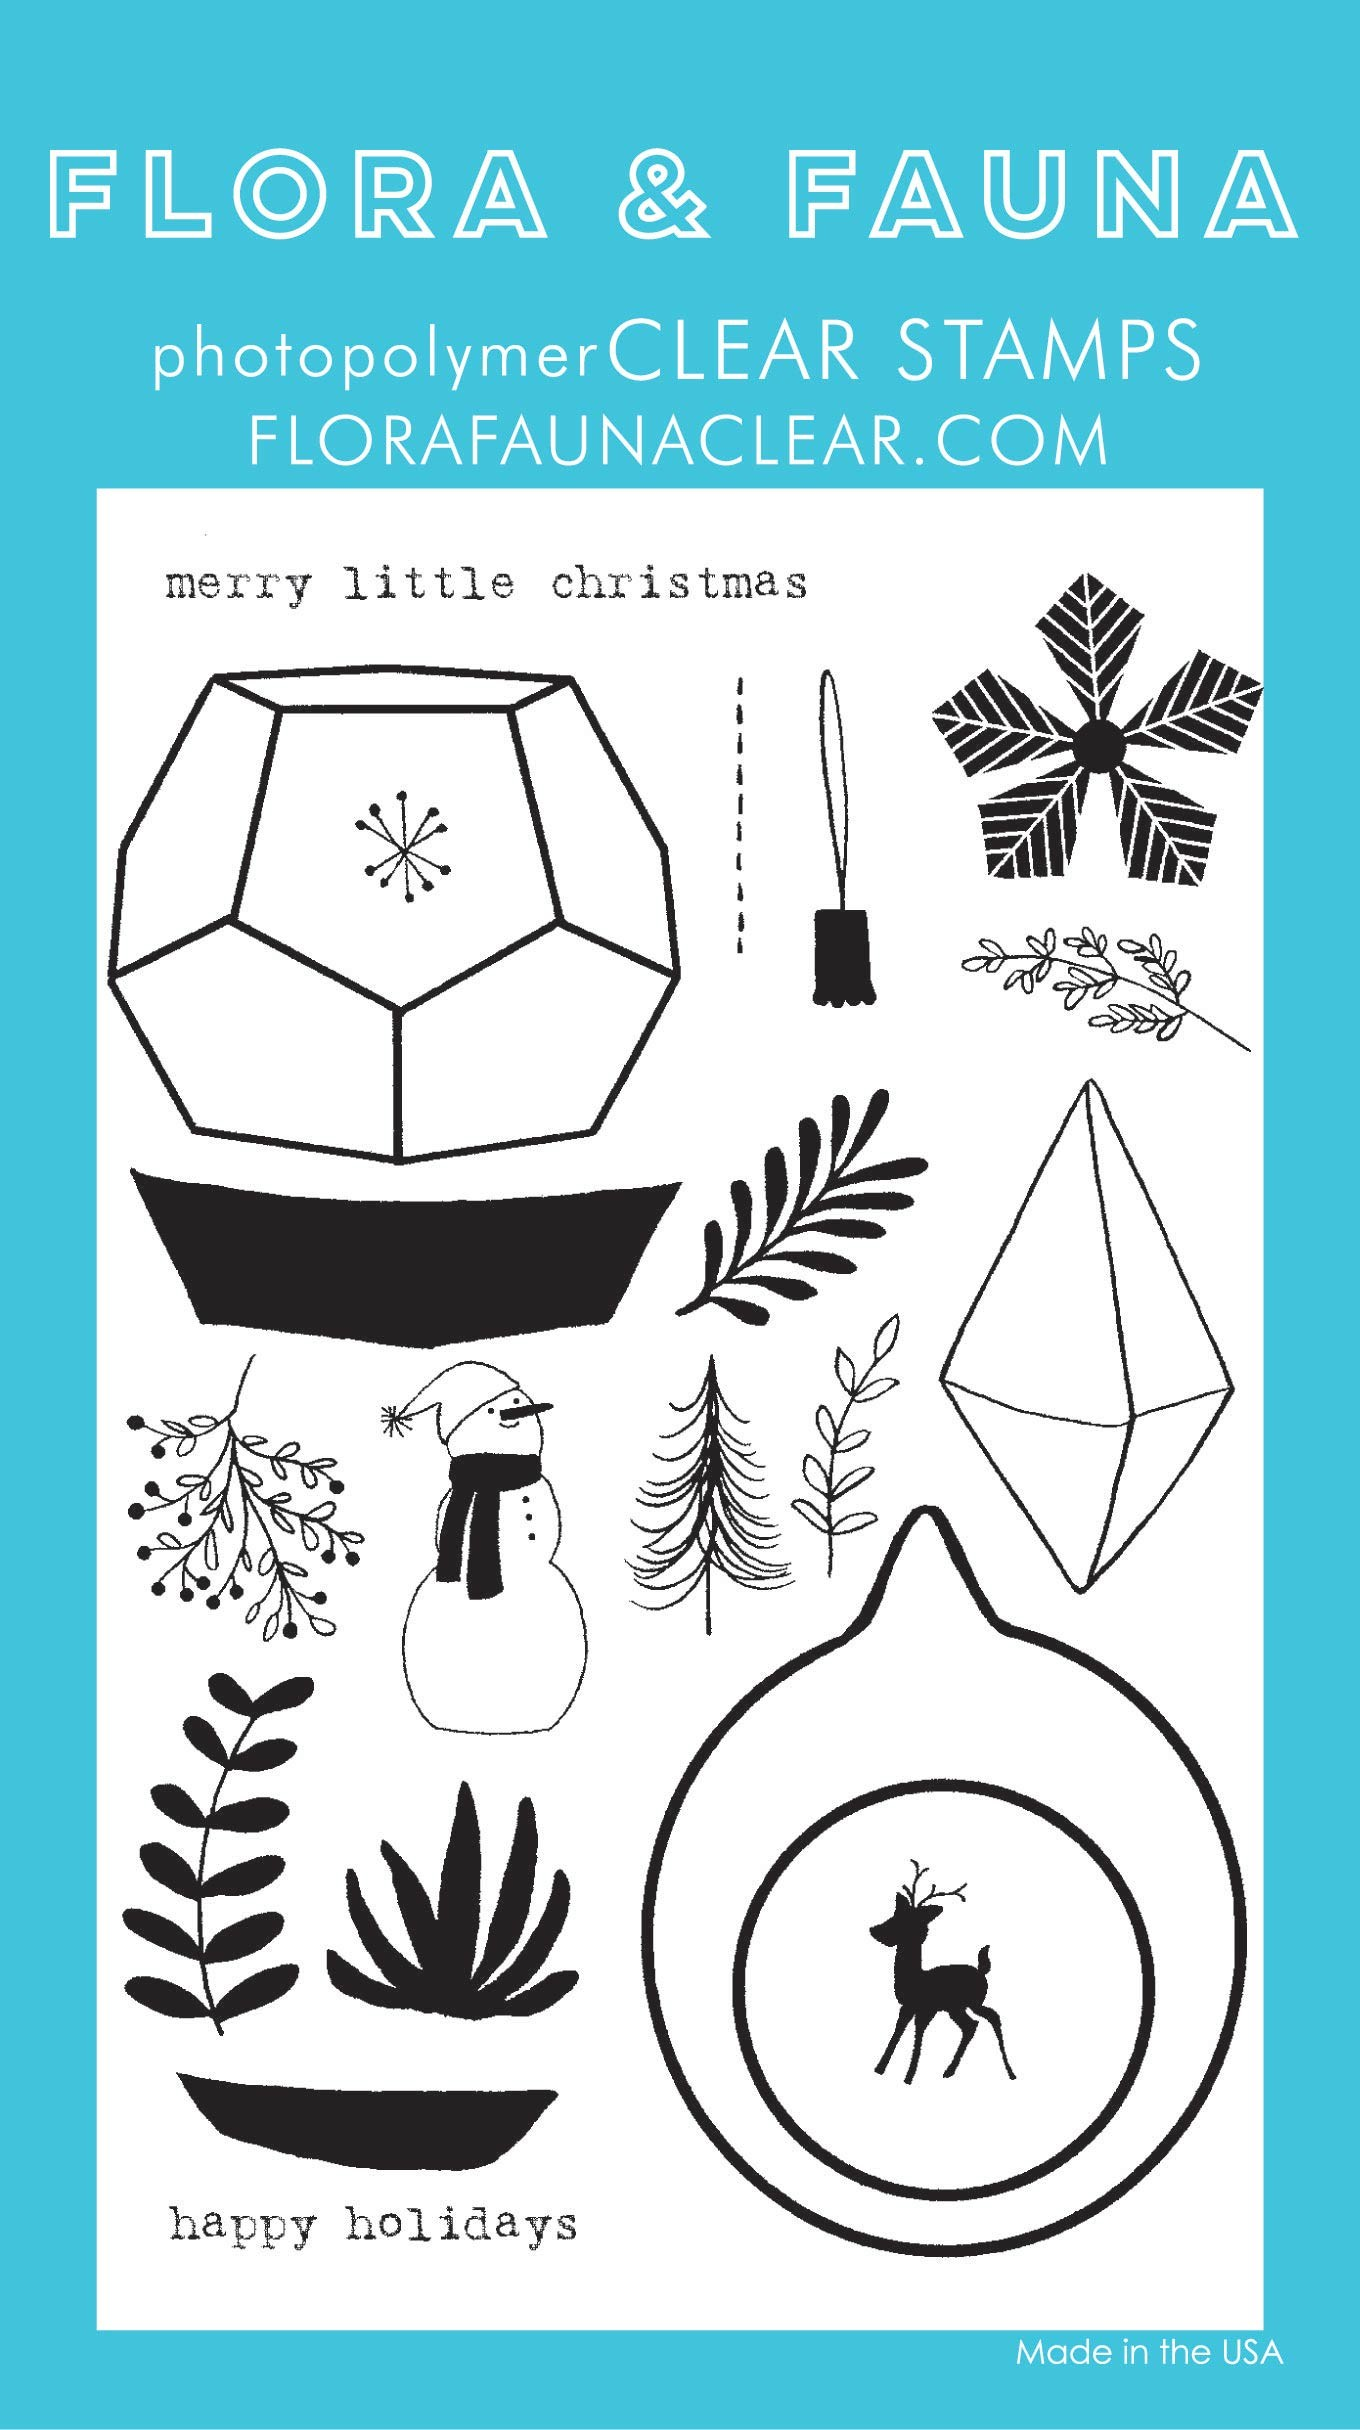 Flora & Fauna Holiday Terrarium Clear Stamp Set